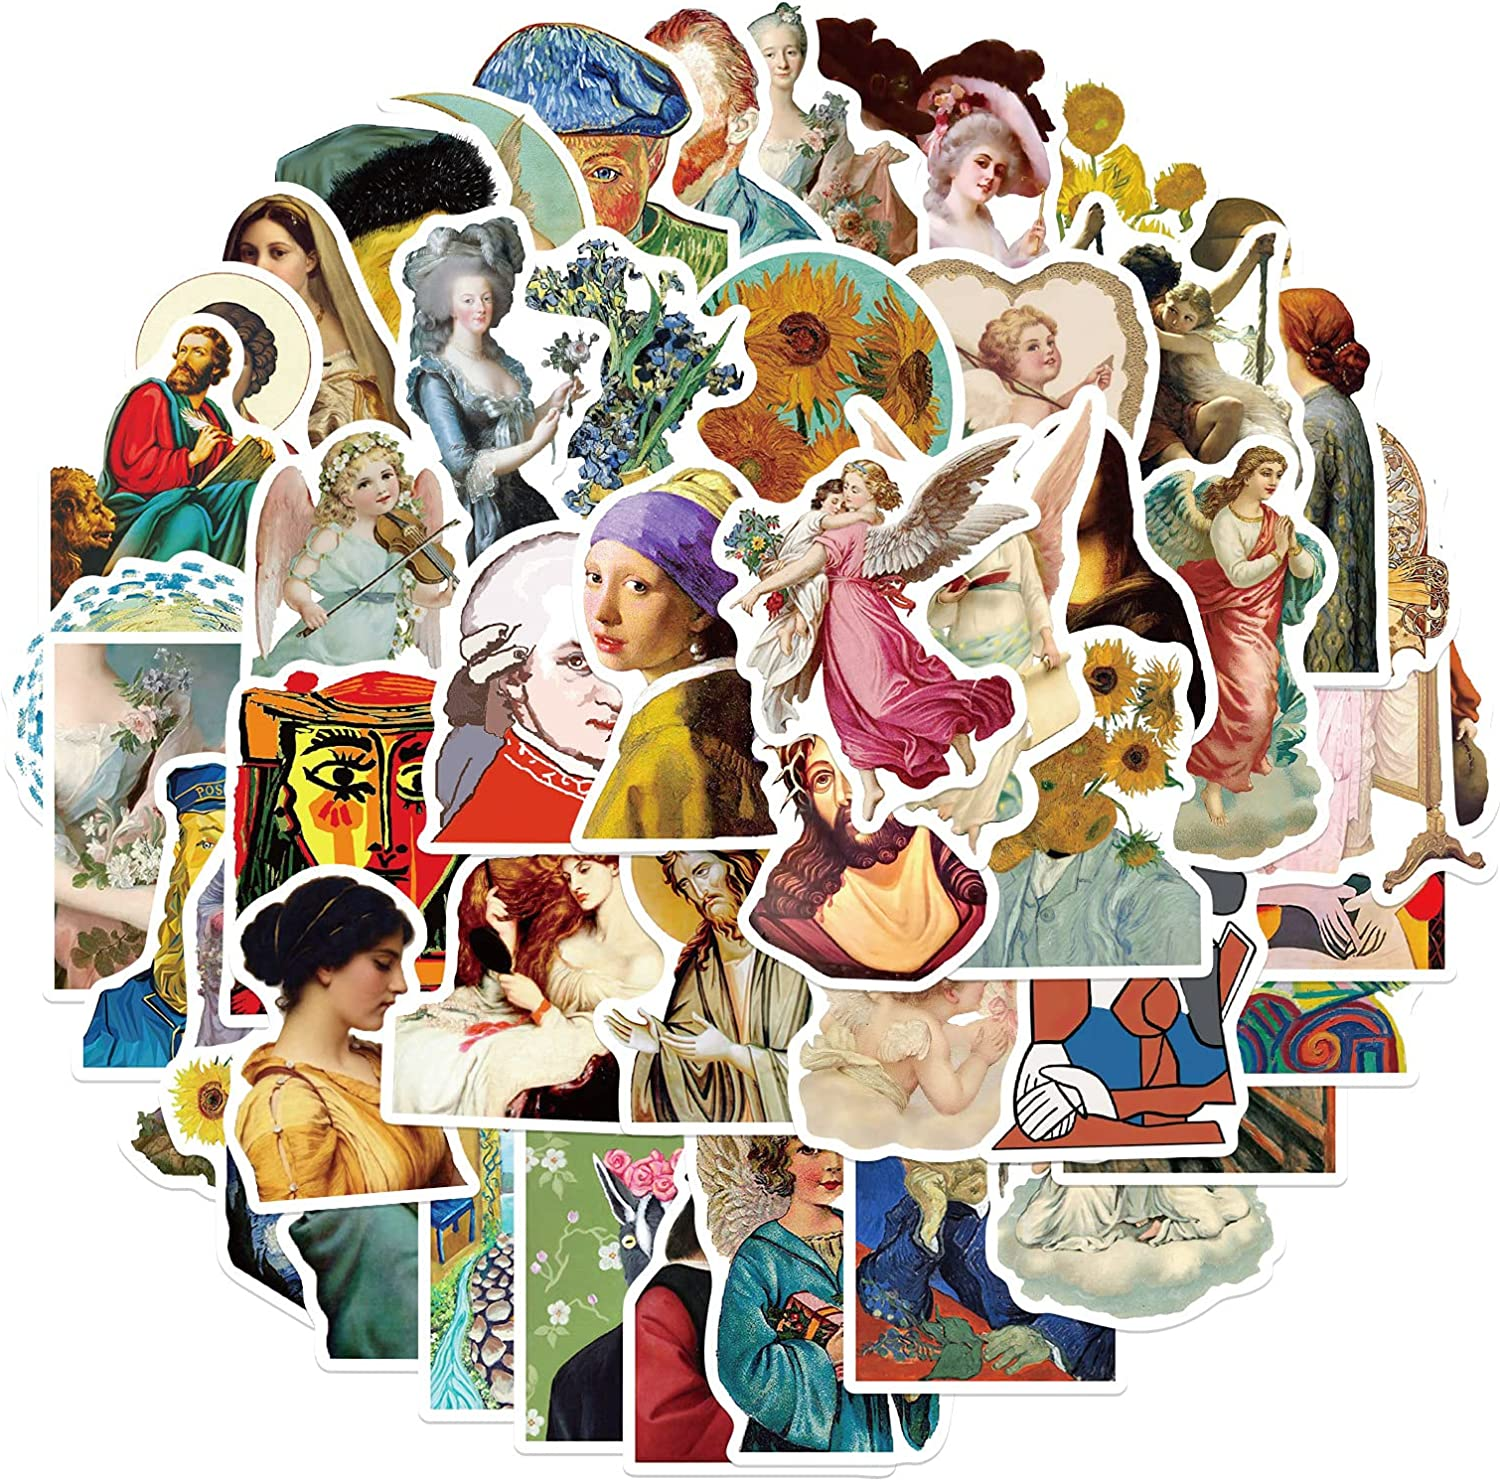 Artist's Famous Paintings Stickers 50 Pcs Made of PVC , Waterproof, Sunscreen, Reusable,Cute, Stylish, Suitable for Drinking Glasses, Laptops, Skateboards, Bicycles, Suitcases, Suitable for Youth.